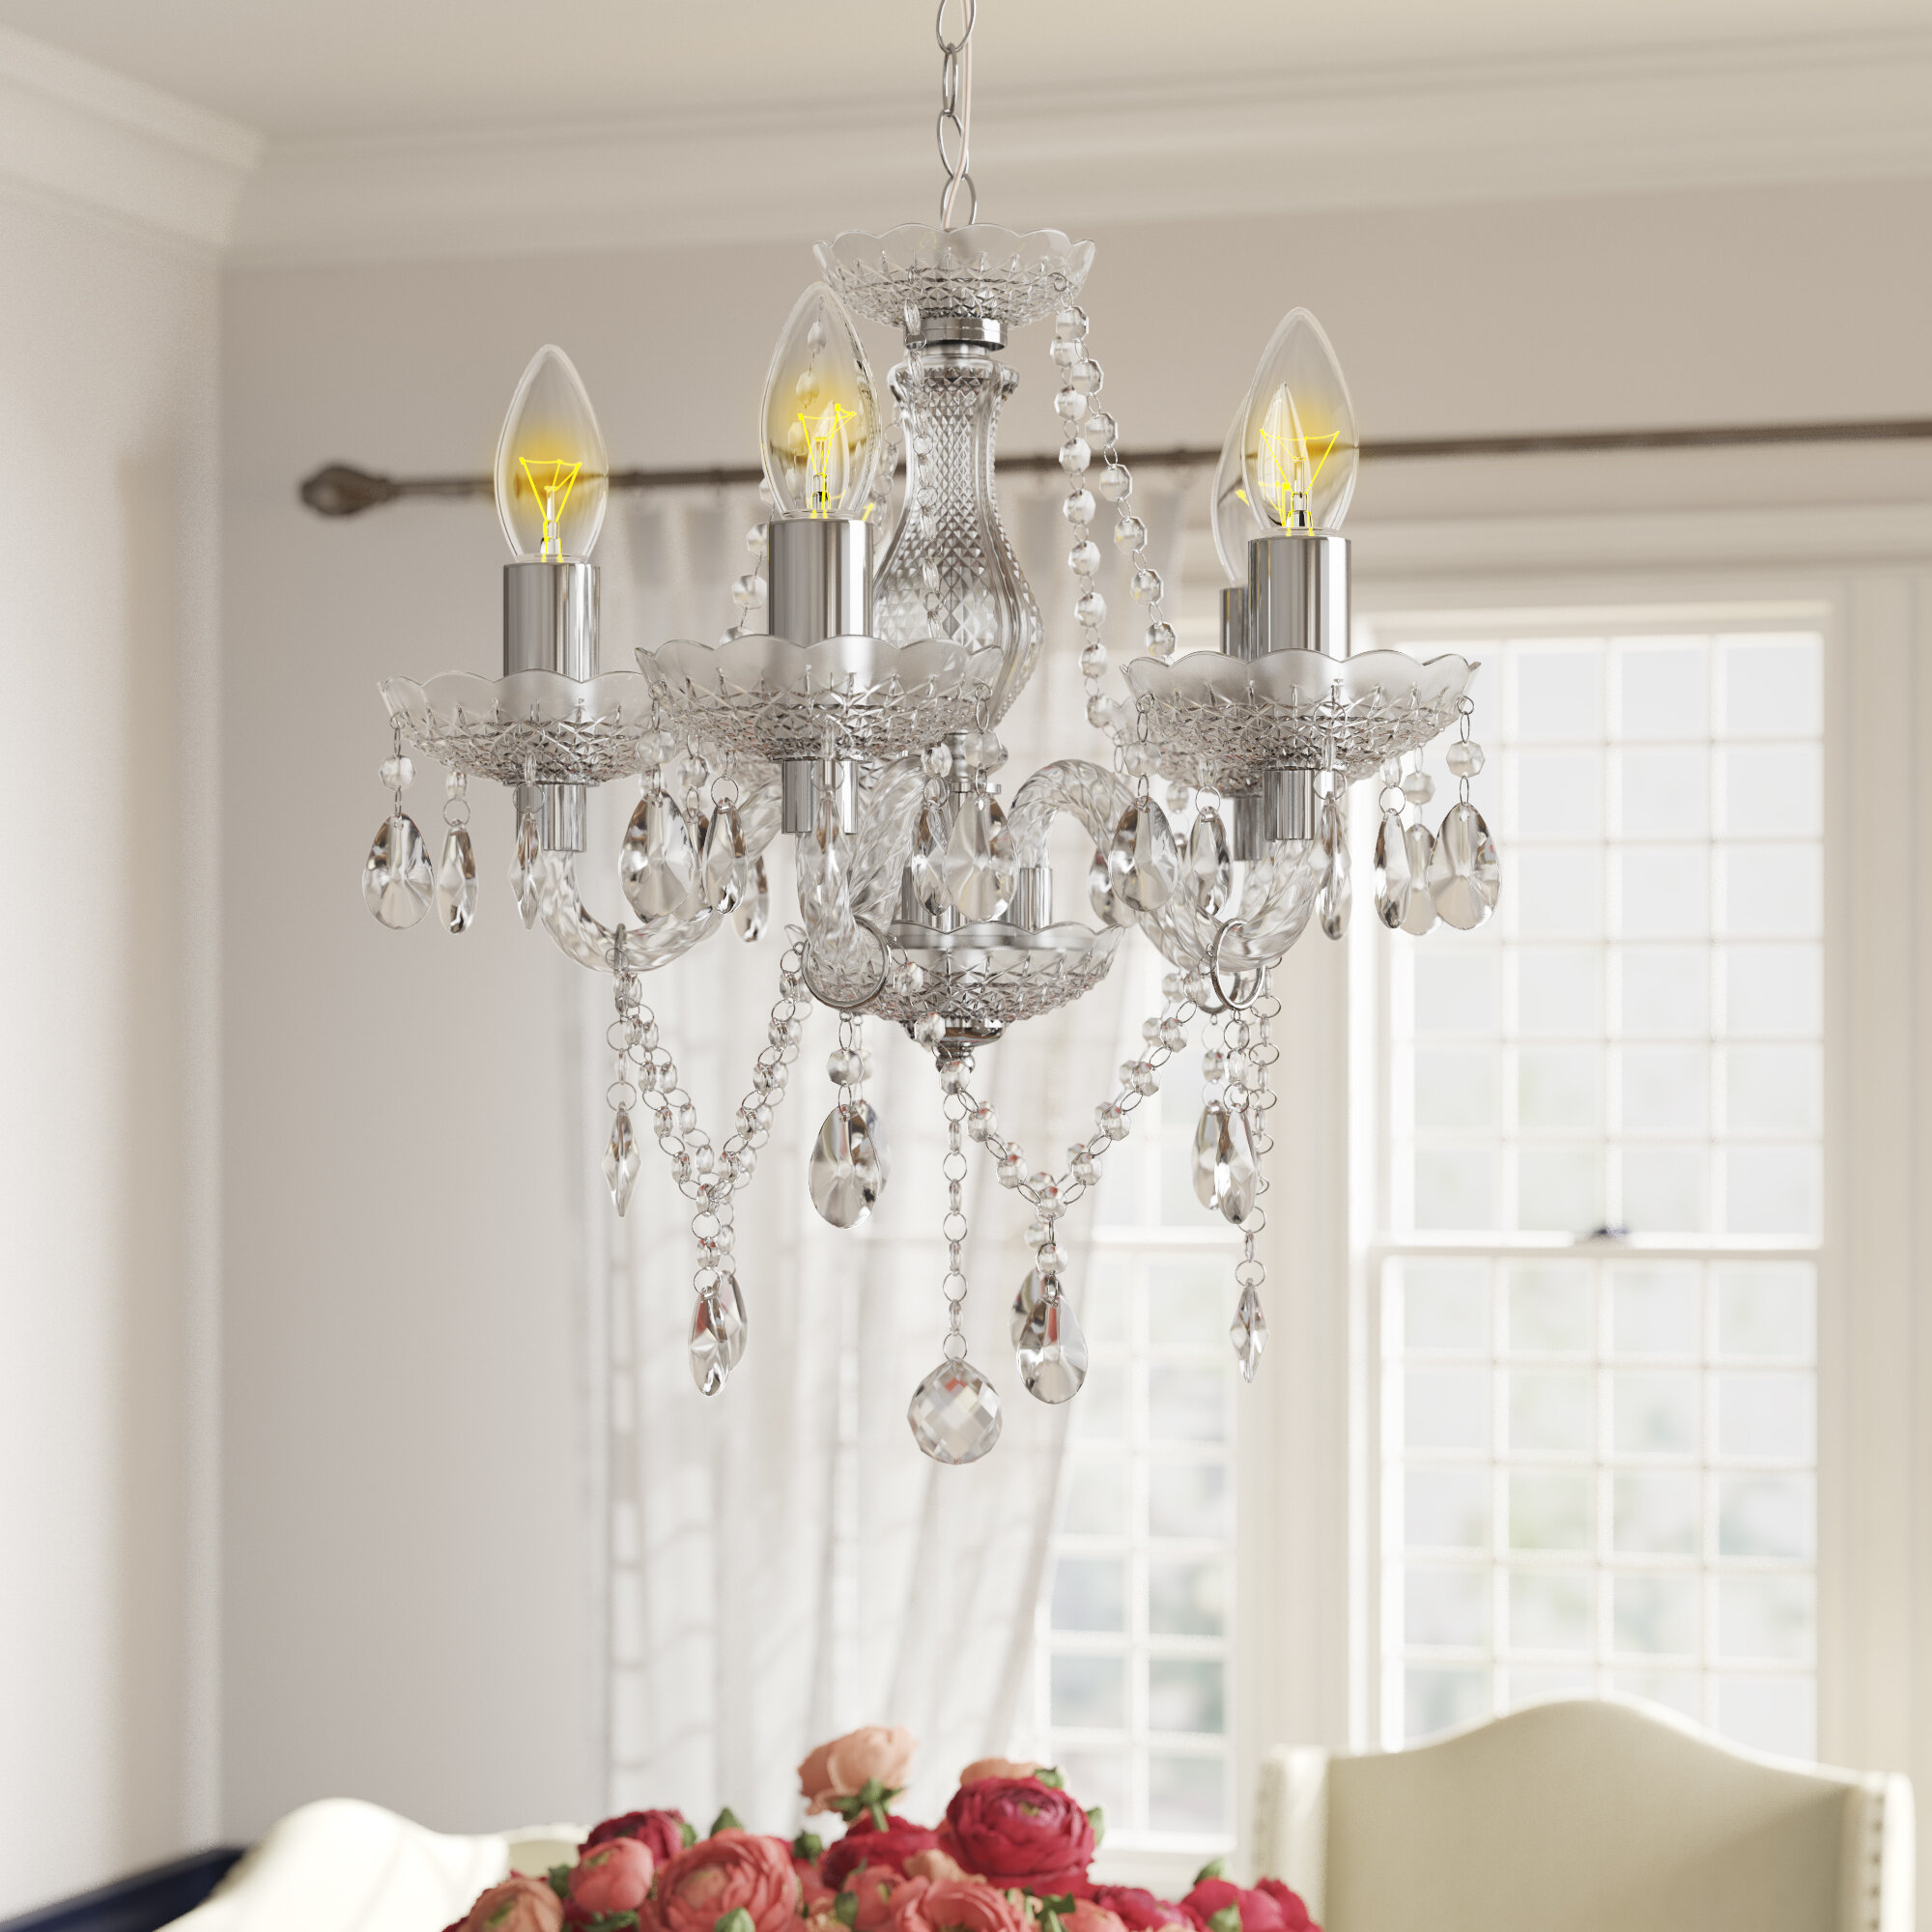 Xan 5-Light Candle-Style Chandelier